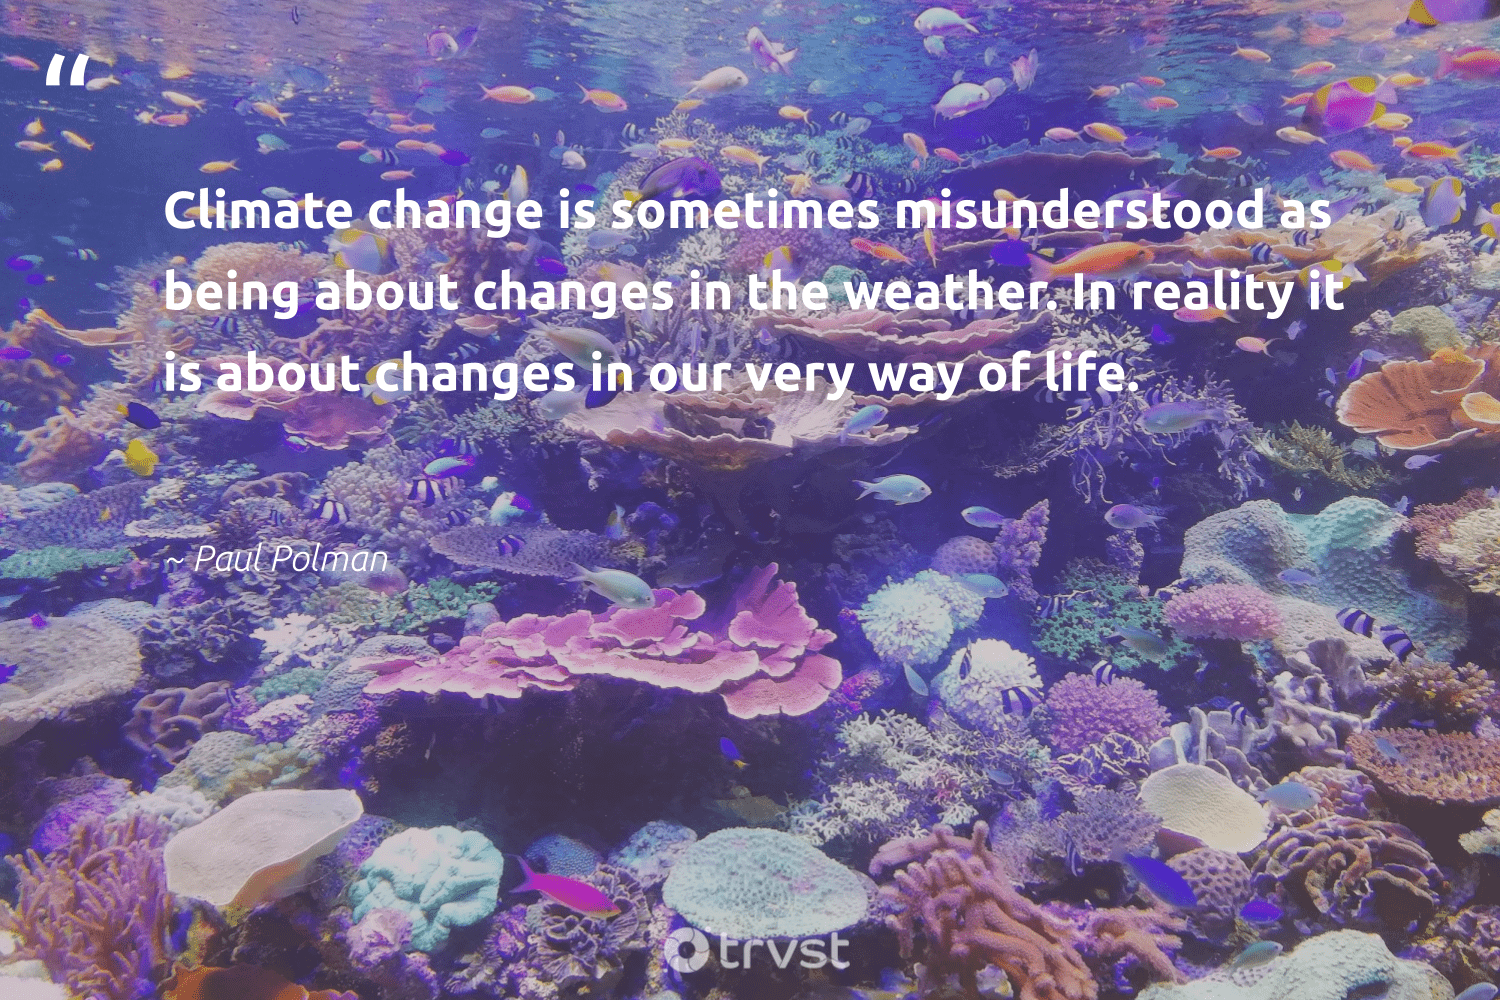 """""""Climate change is sometimes misunderstood as being about changes in the weather. In reality it is about changes in our very way of life.""""  - Paul Polman #trvst #quotes #climatechange #weather #climate #actonclimate #tornado #sustainablefutures #ecoconscious #changetheworld #co2 #hurricane"""